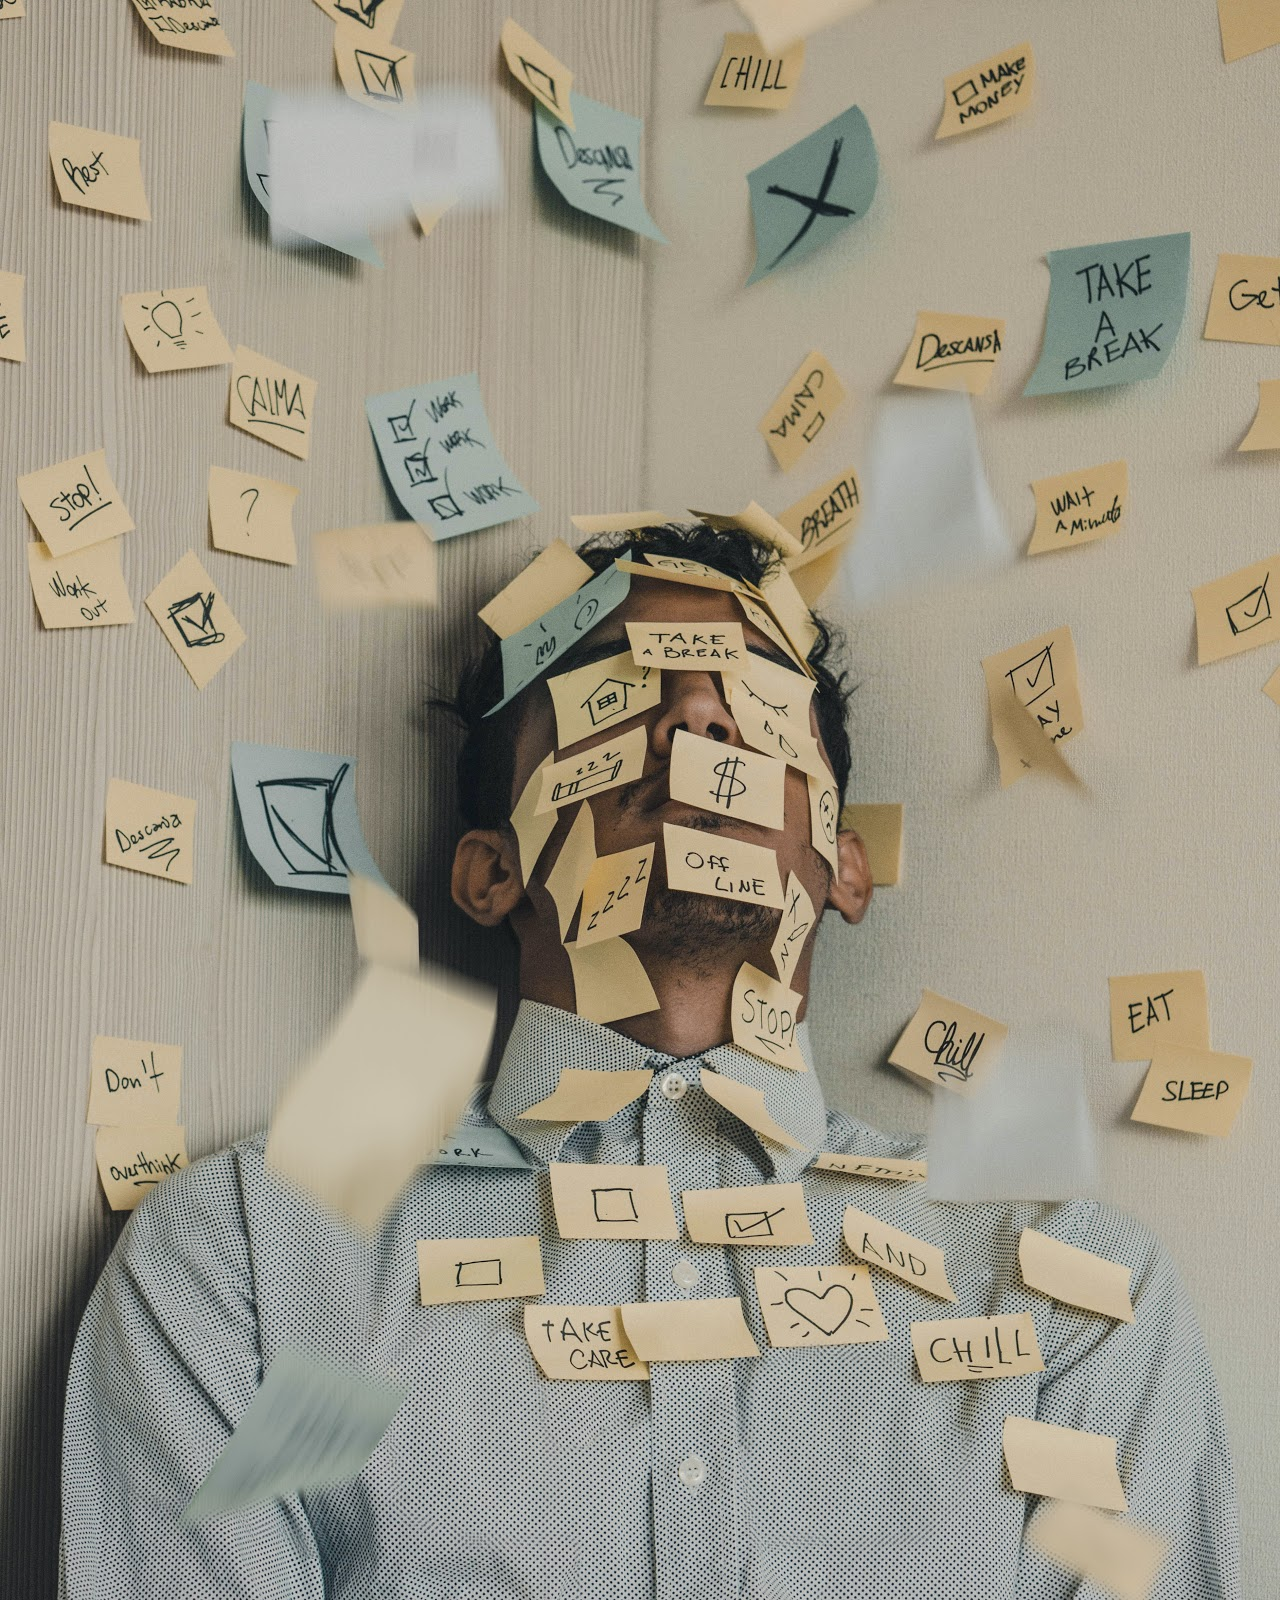 Burnout is all too real in pandemic work-from-home. This image shows an exhausted man covered in to-do post-it notes.